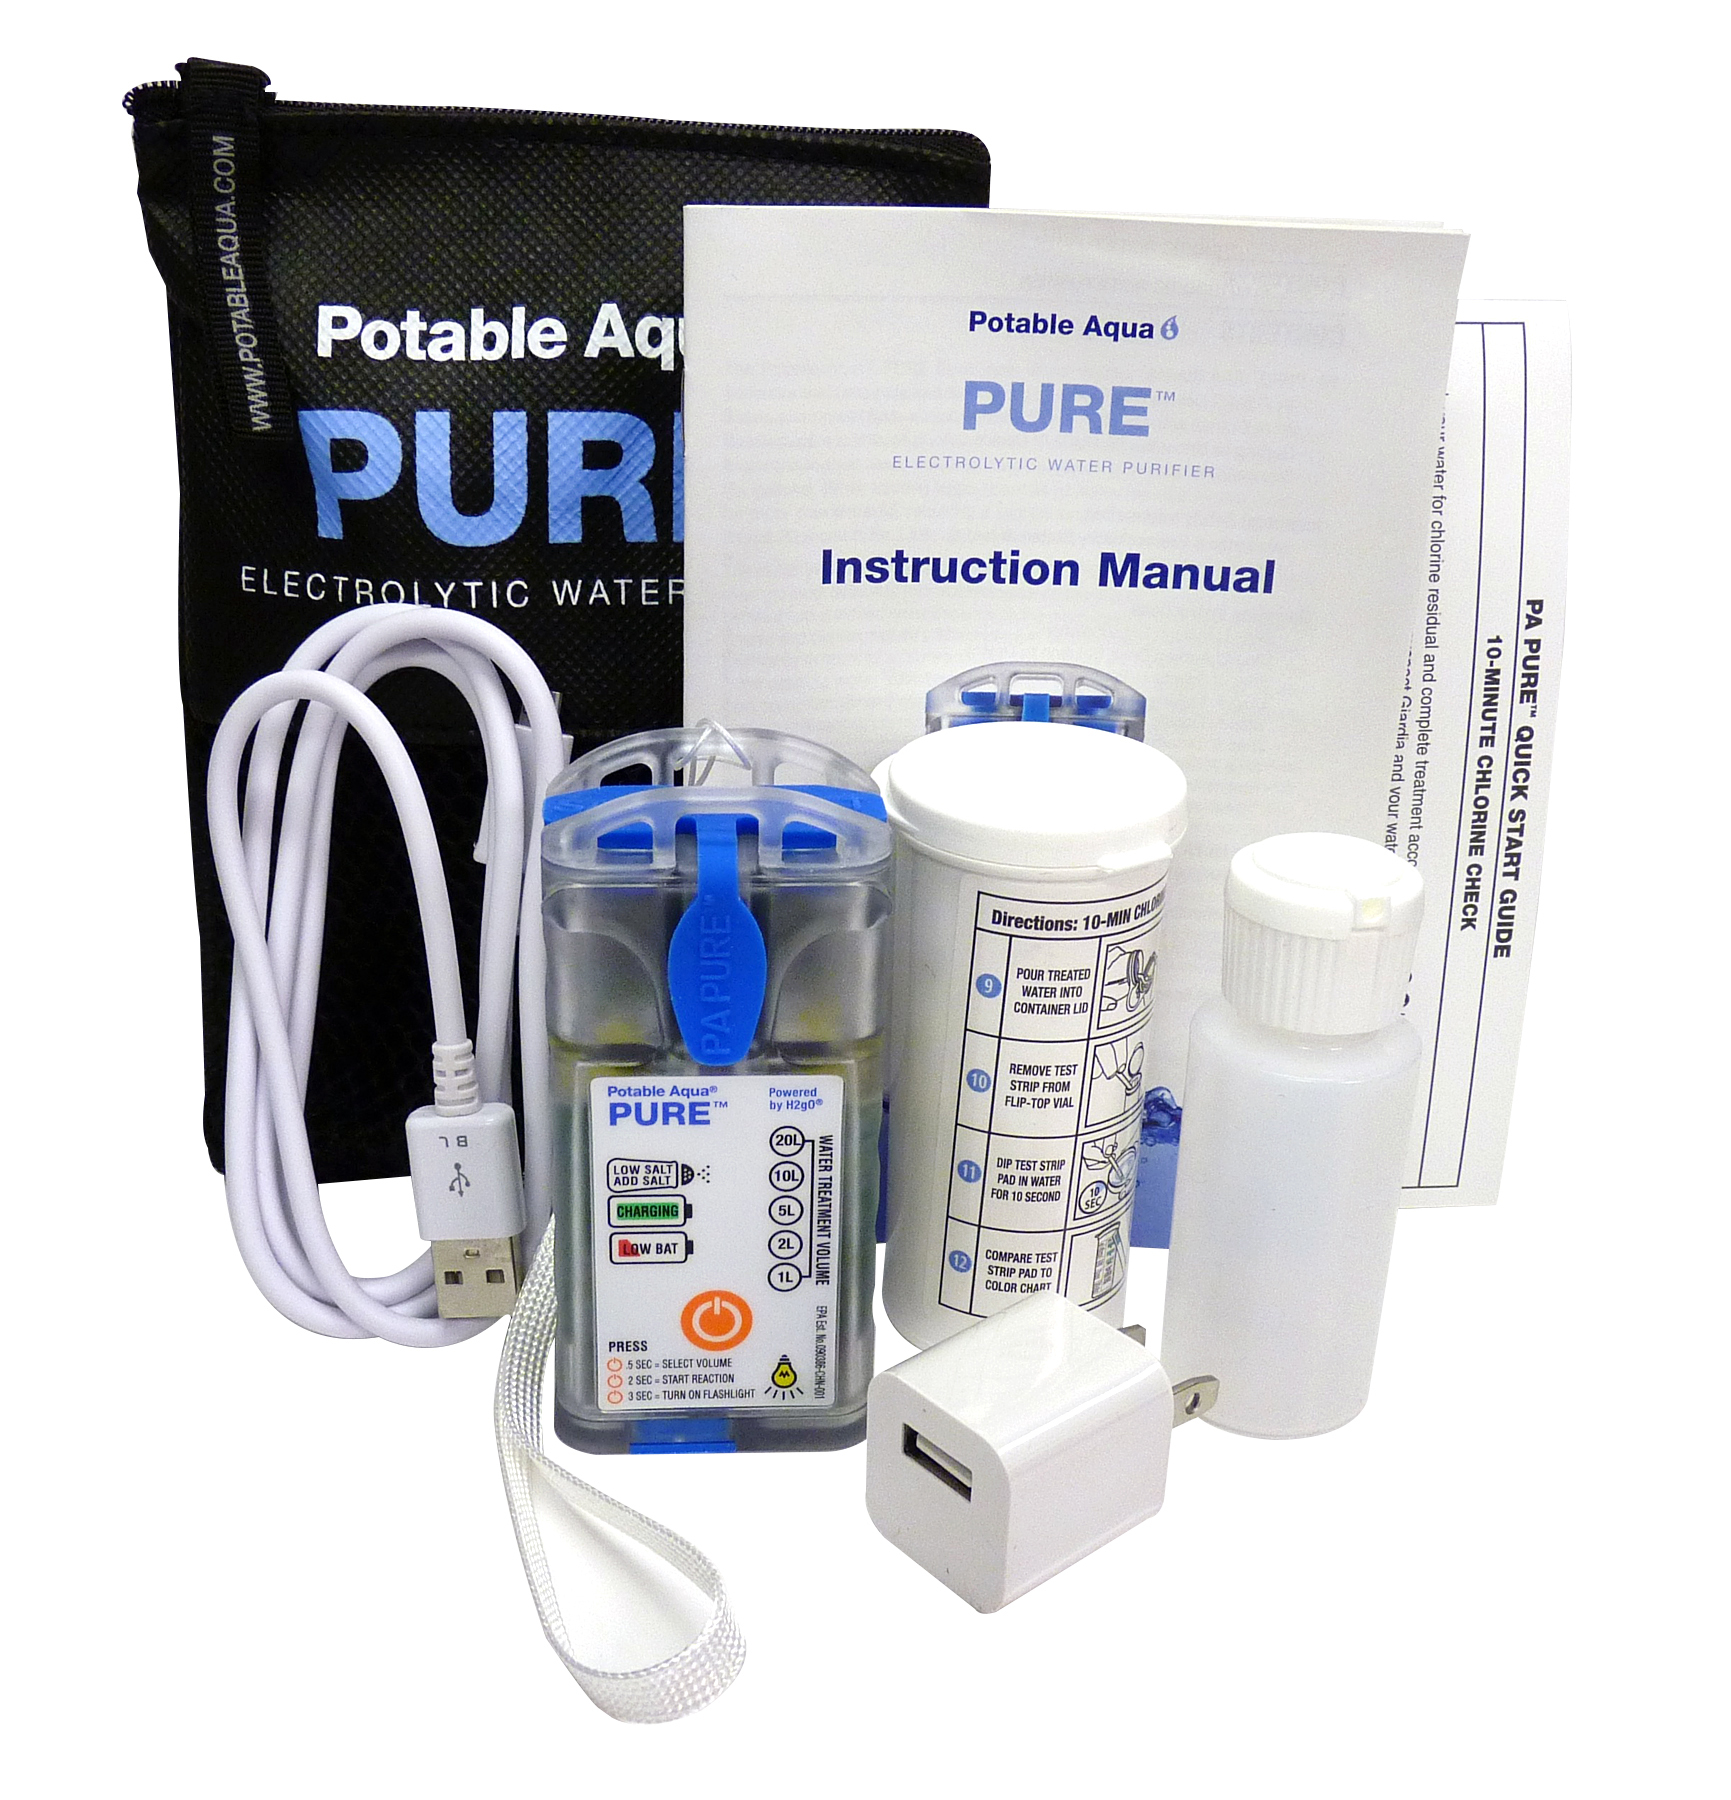 3061 - WPC Potable Aqua PURE Electrolytic Device